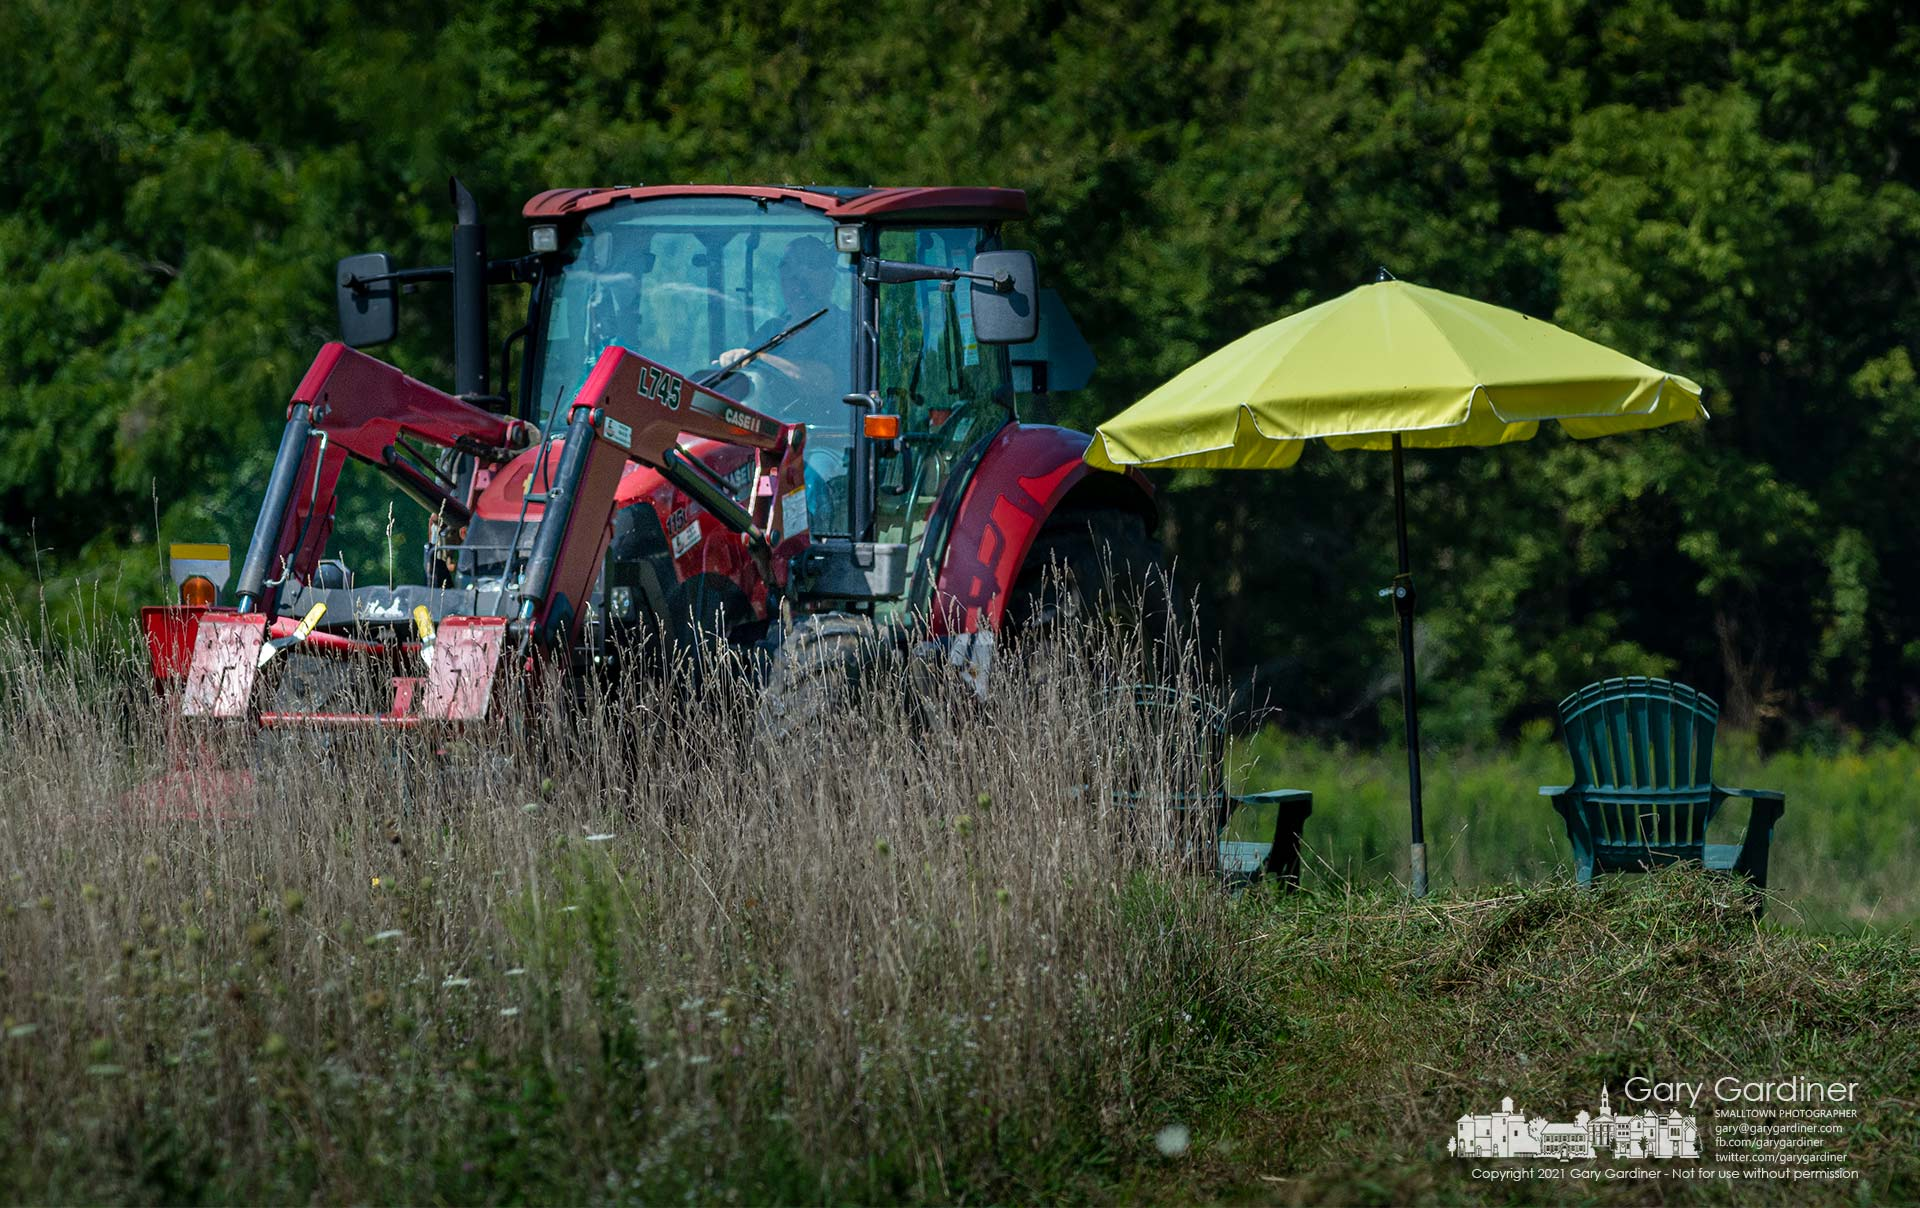 Kevin Scott steers his tractor around an umbrella and lawn chairs placed in an open space in the farm field he cutting for hay on North West Street. My Final Photo for Sept. 3, 2021.